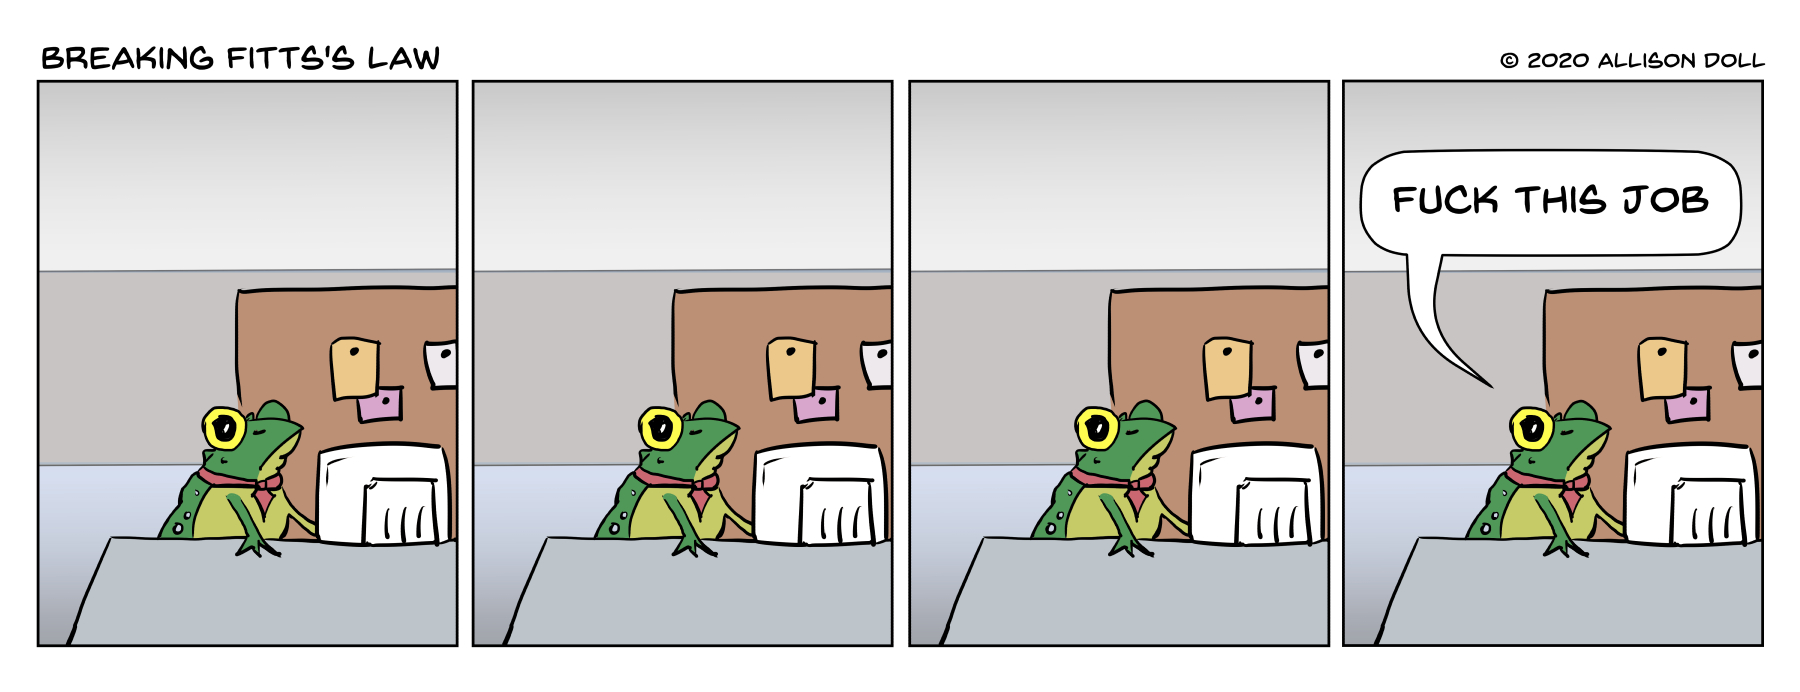 Frog Hates Job – Guest Comic by Allison Doll